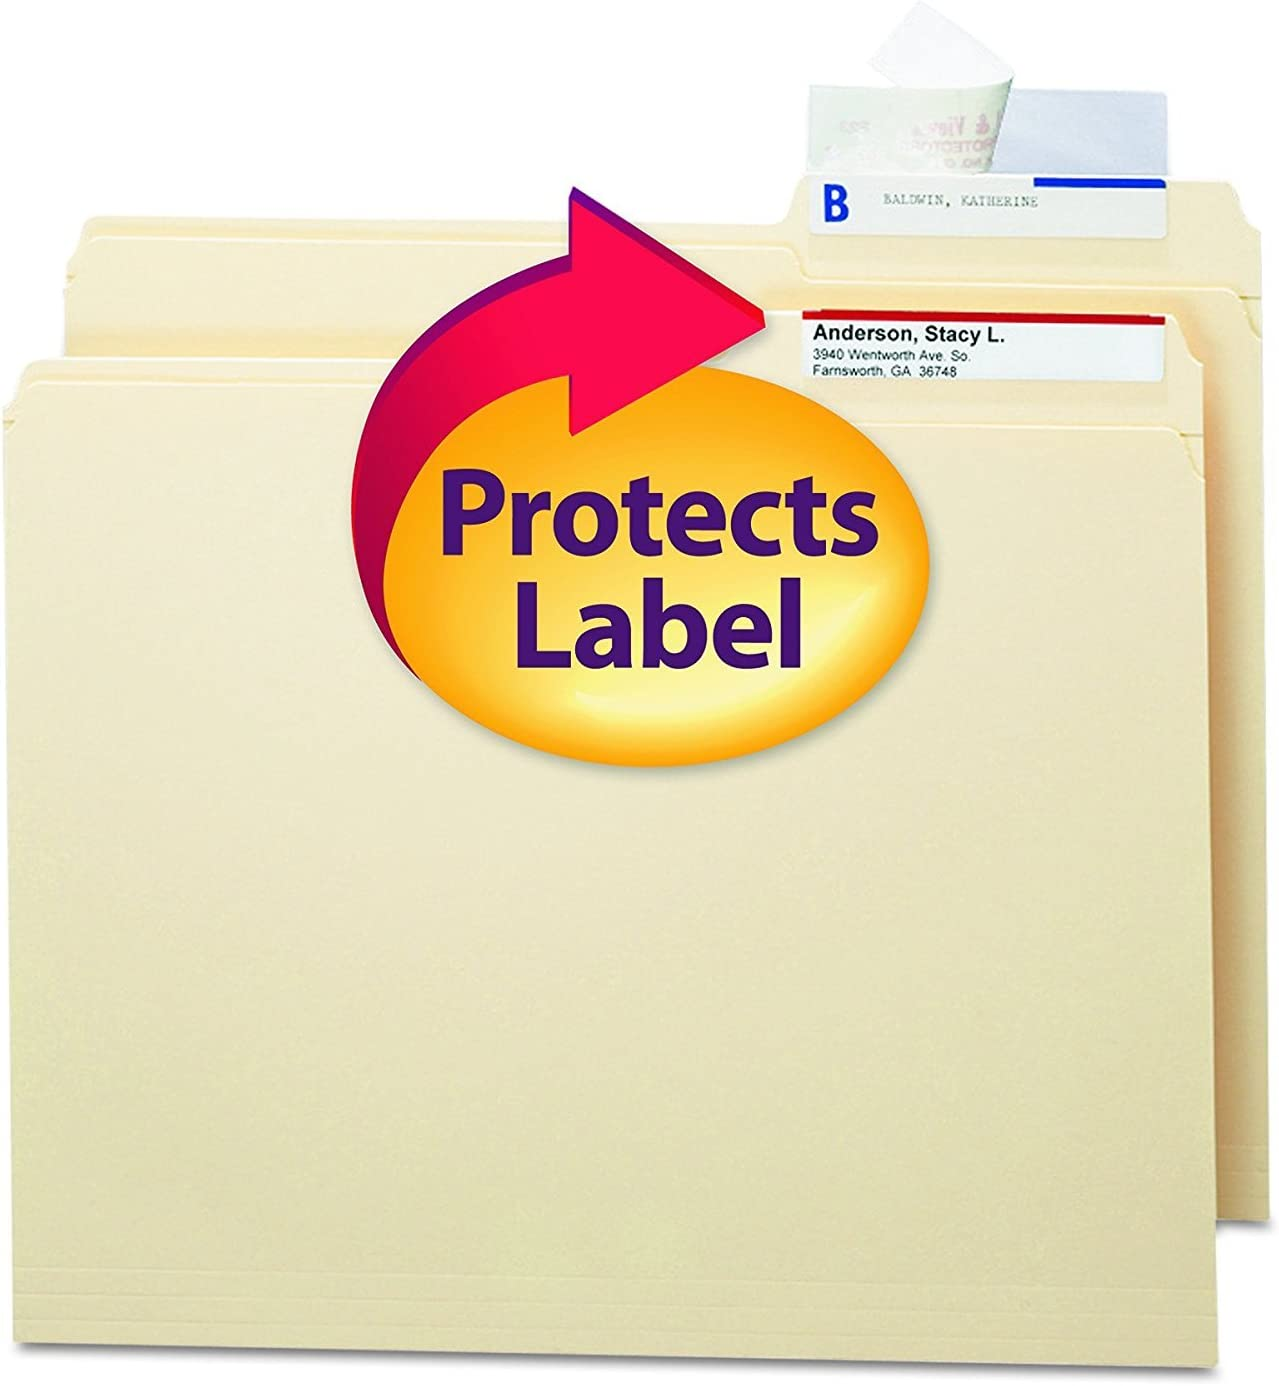 Smead 67600 Seal View File Label Folder Clear specialty shop Limited time trial price Lamin Protector